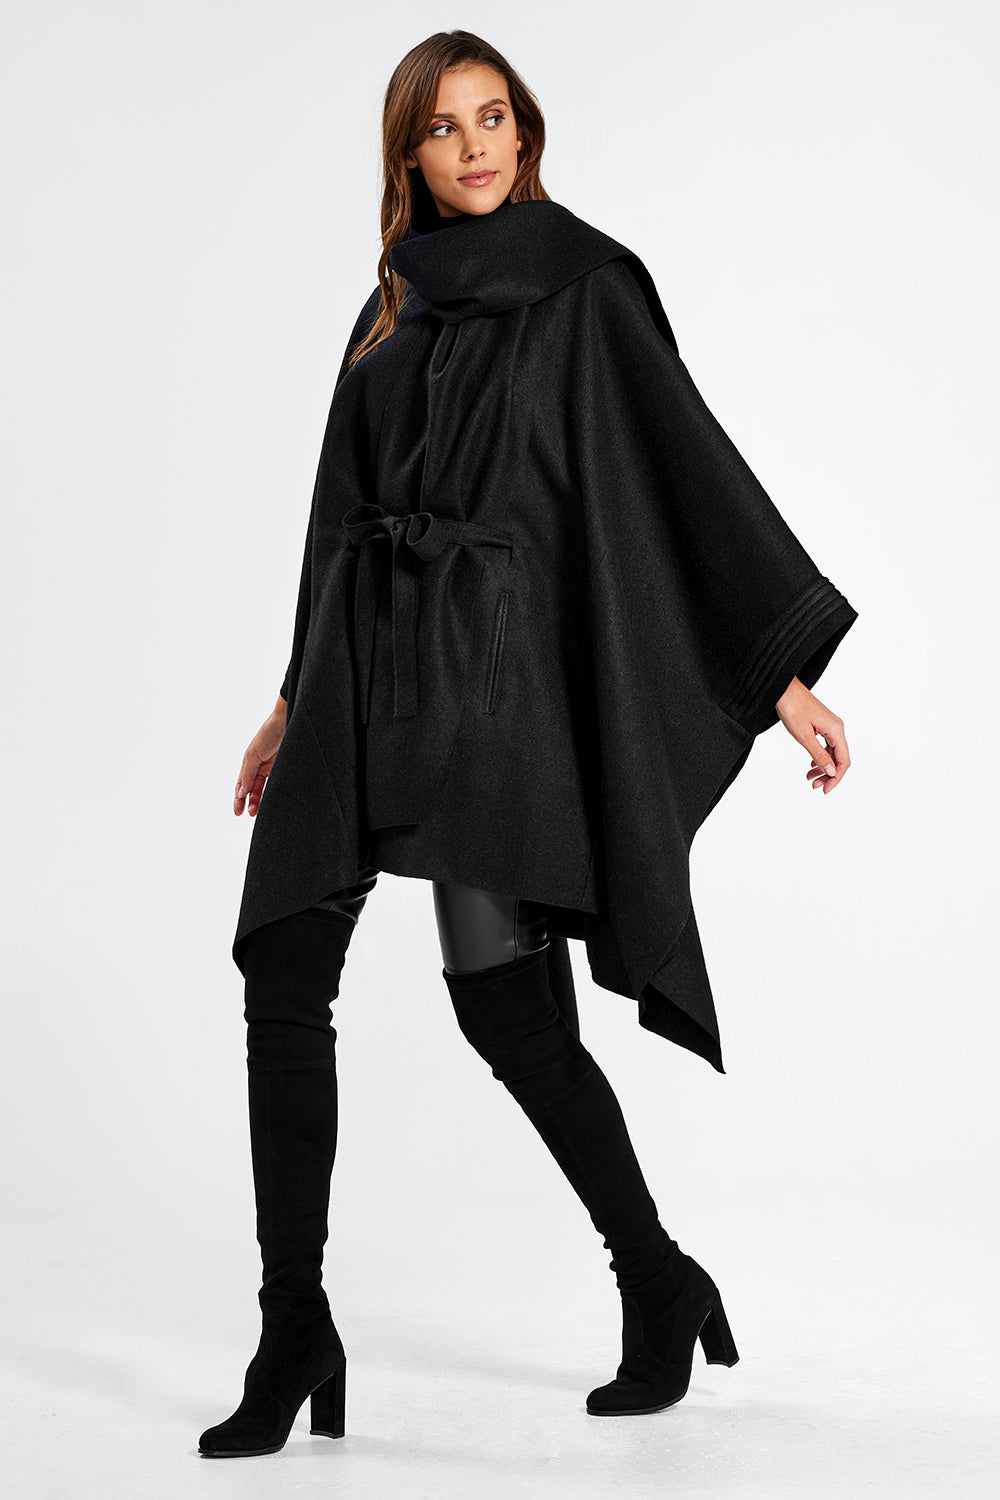 Sentaler Poncho with Shawl Collar and Belt featured in Superfine Alpaca and available in Black. Seen from side.